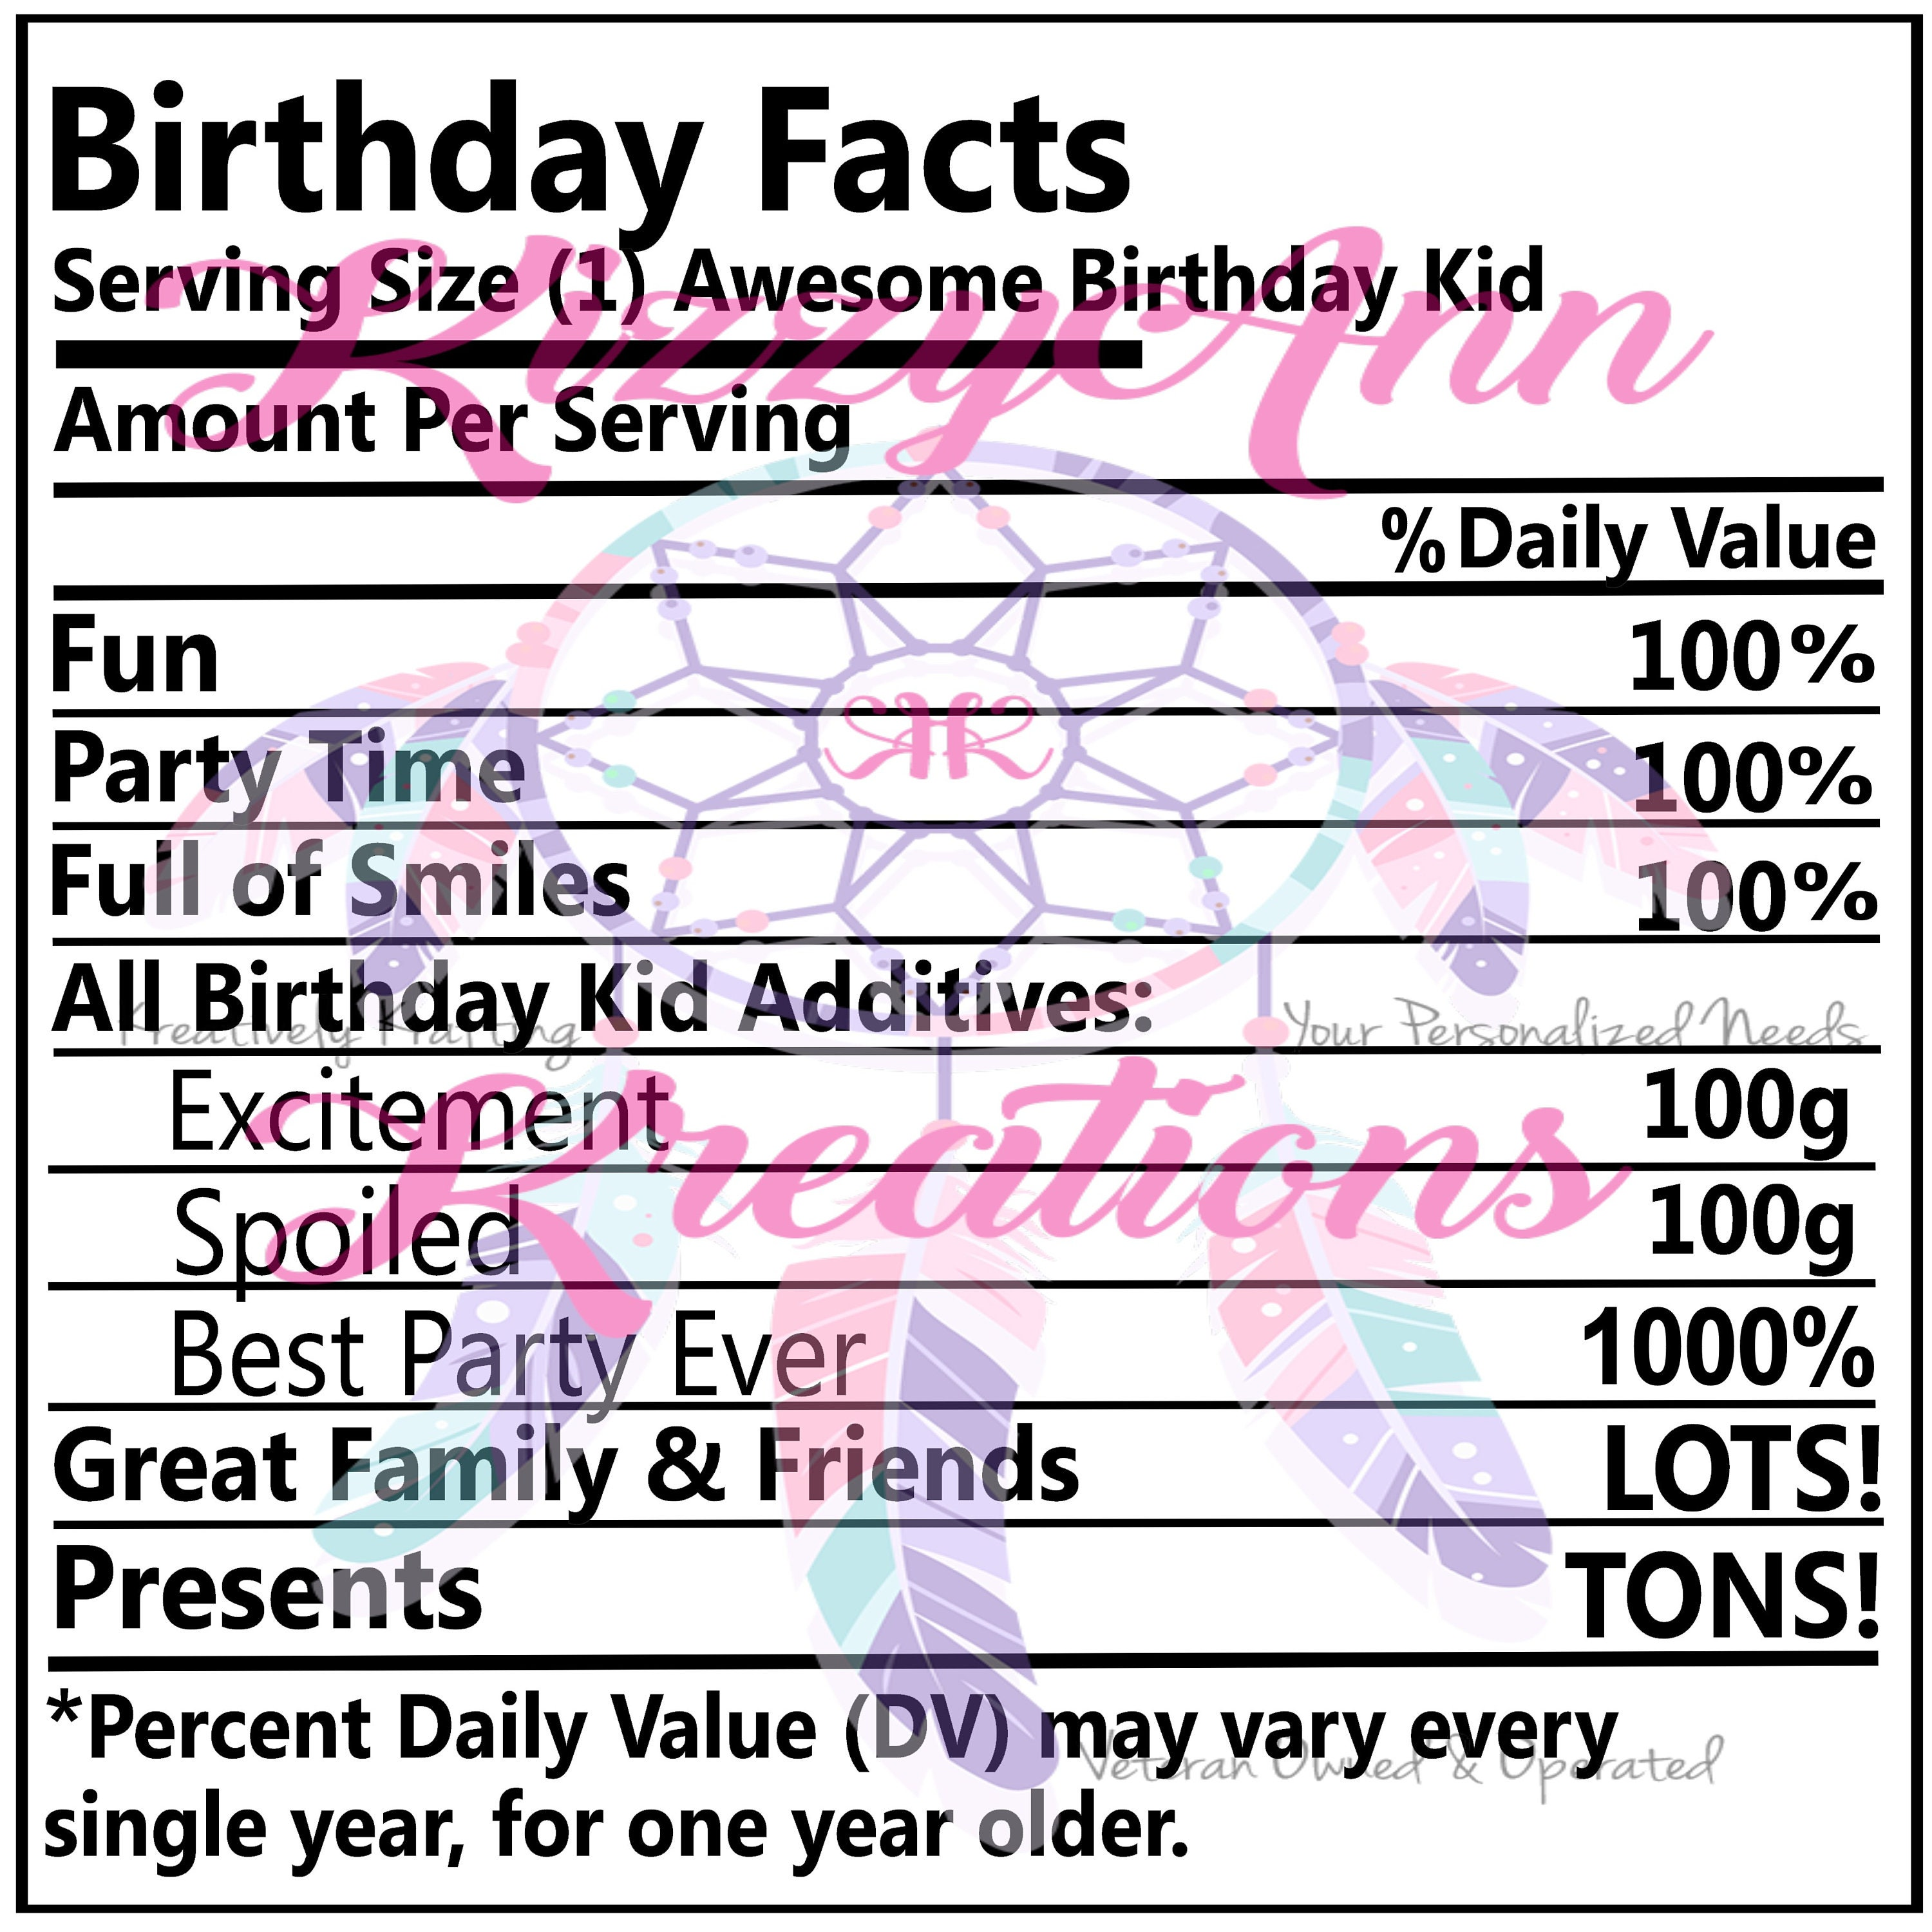 Kid Facts, Nutritional Facts Svg Cut File, Birthday, Cricut, Cameo  Silhouette, T-shirt, Decal, Cup Decal, Print and Cut,